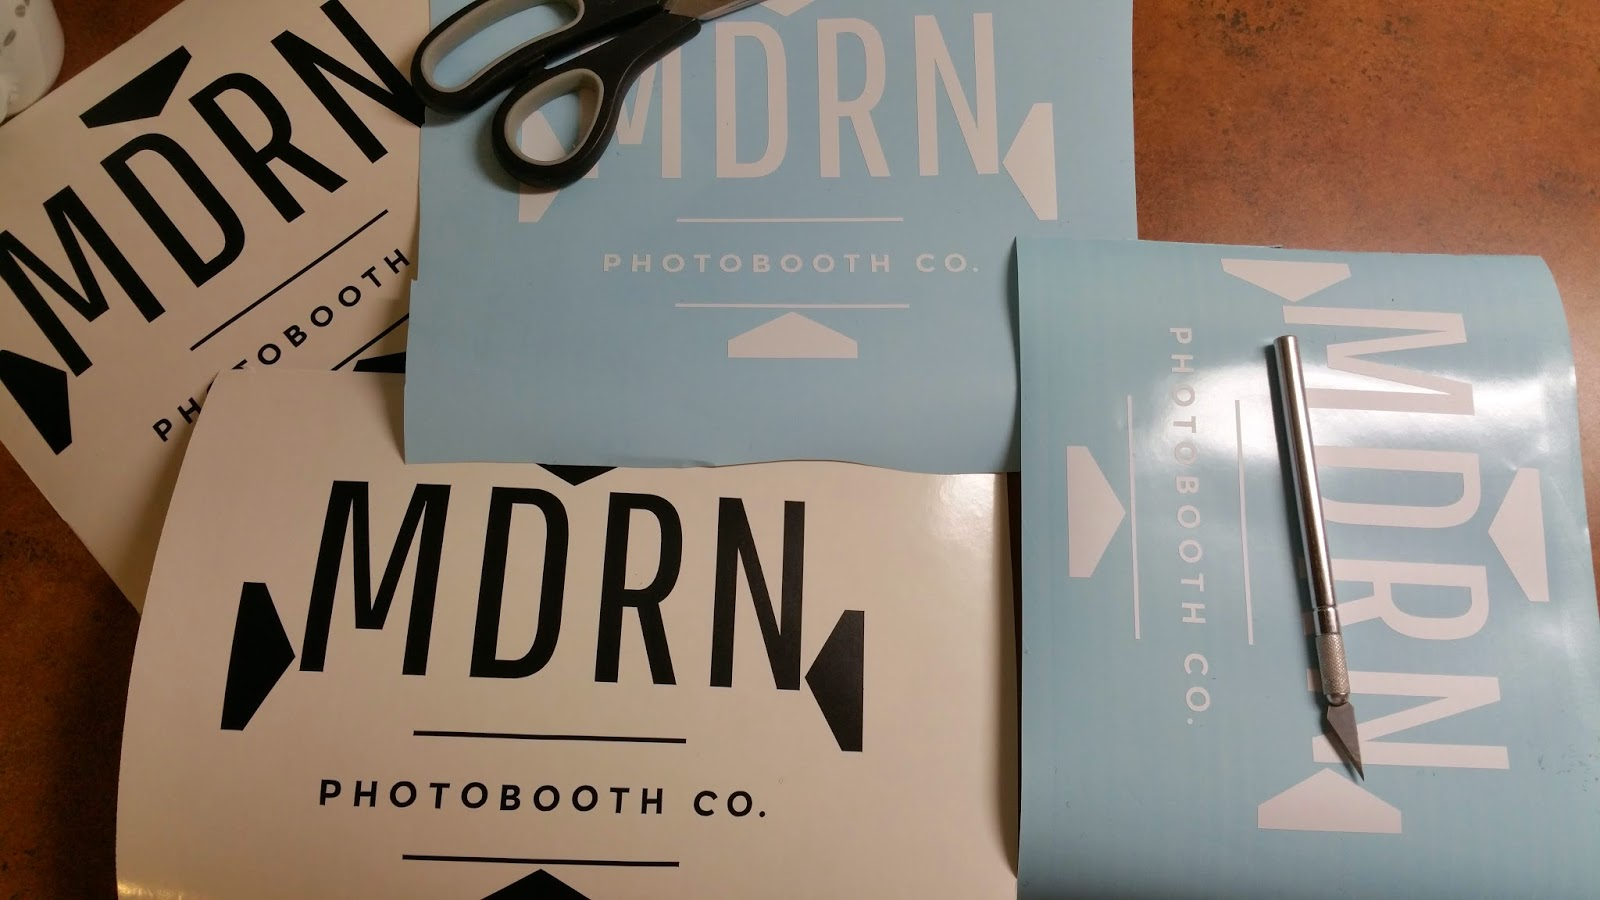 Modern Photobooth Company Logo Vinyl Decals